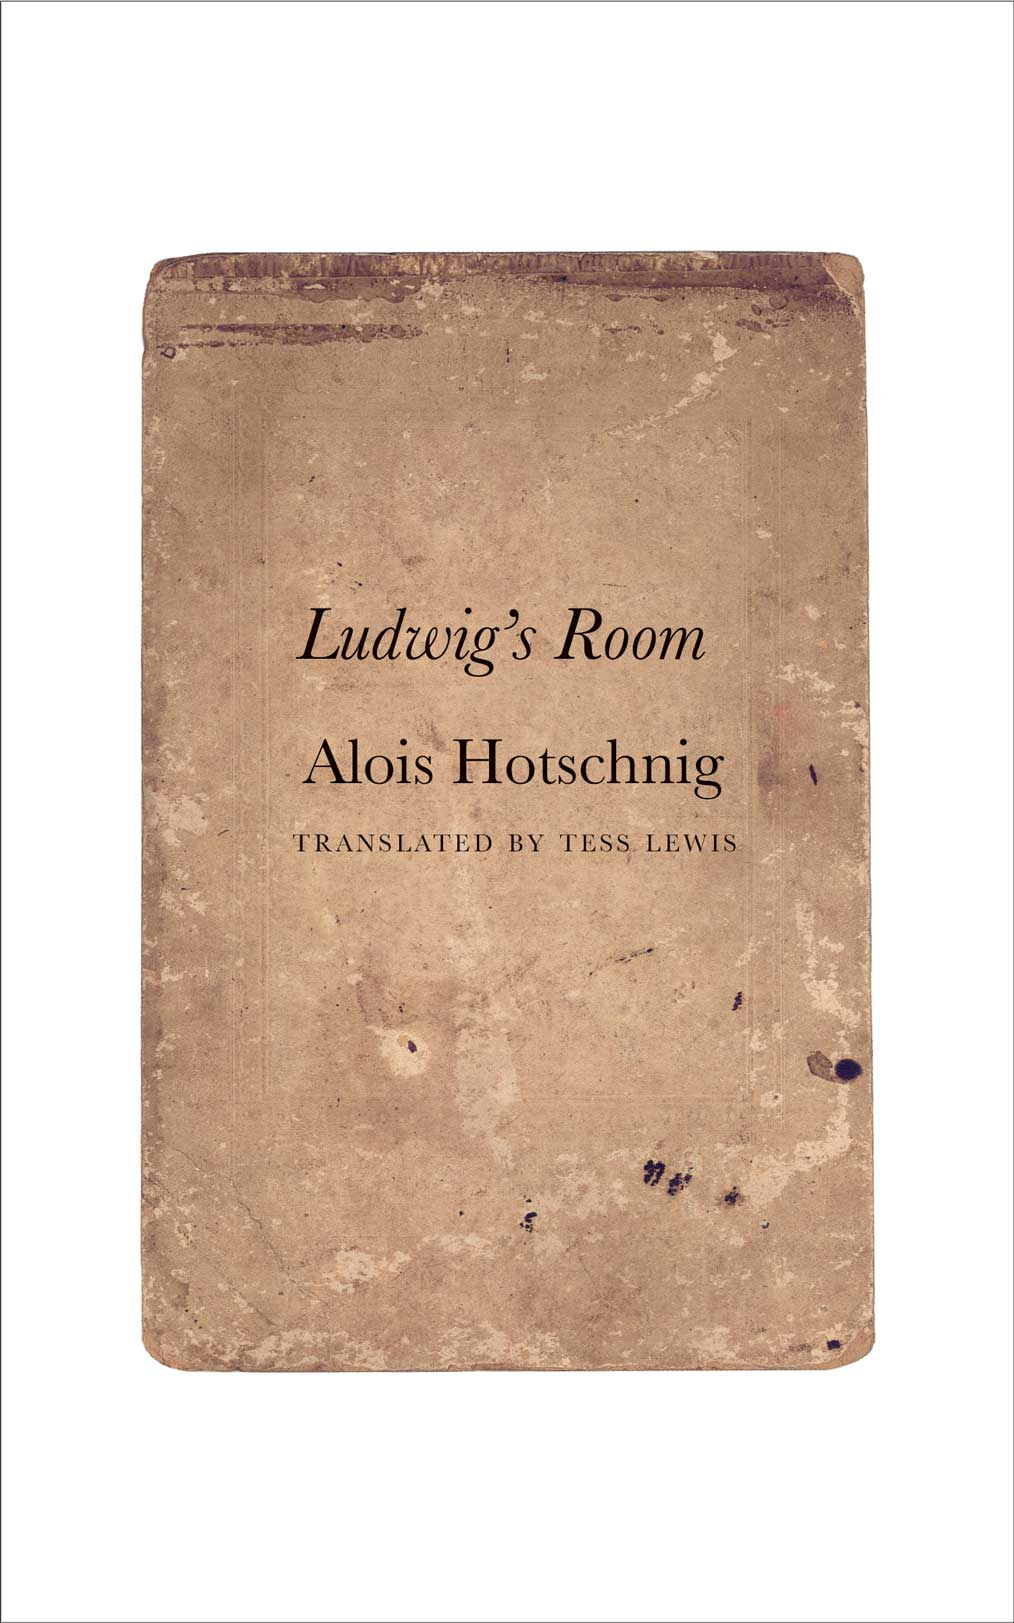 Ludwig's Room by Alois Hotschnig | Seagull Books